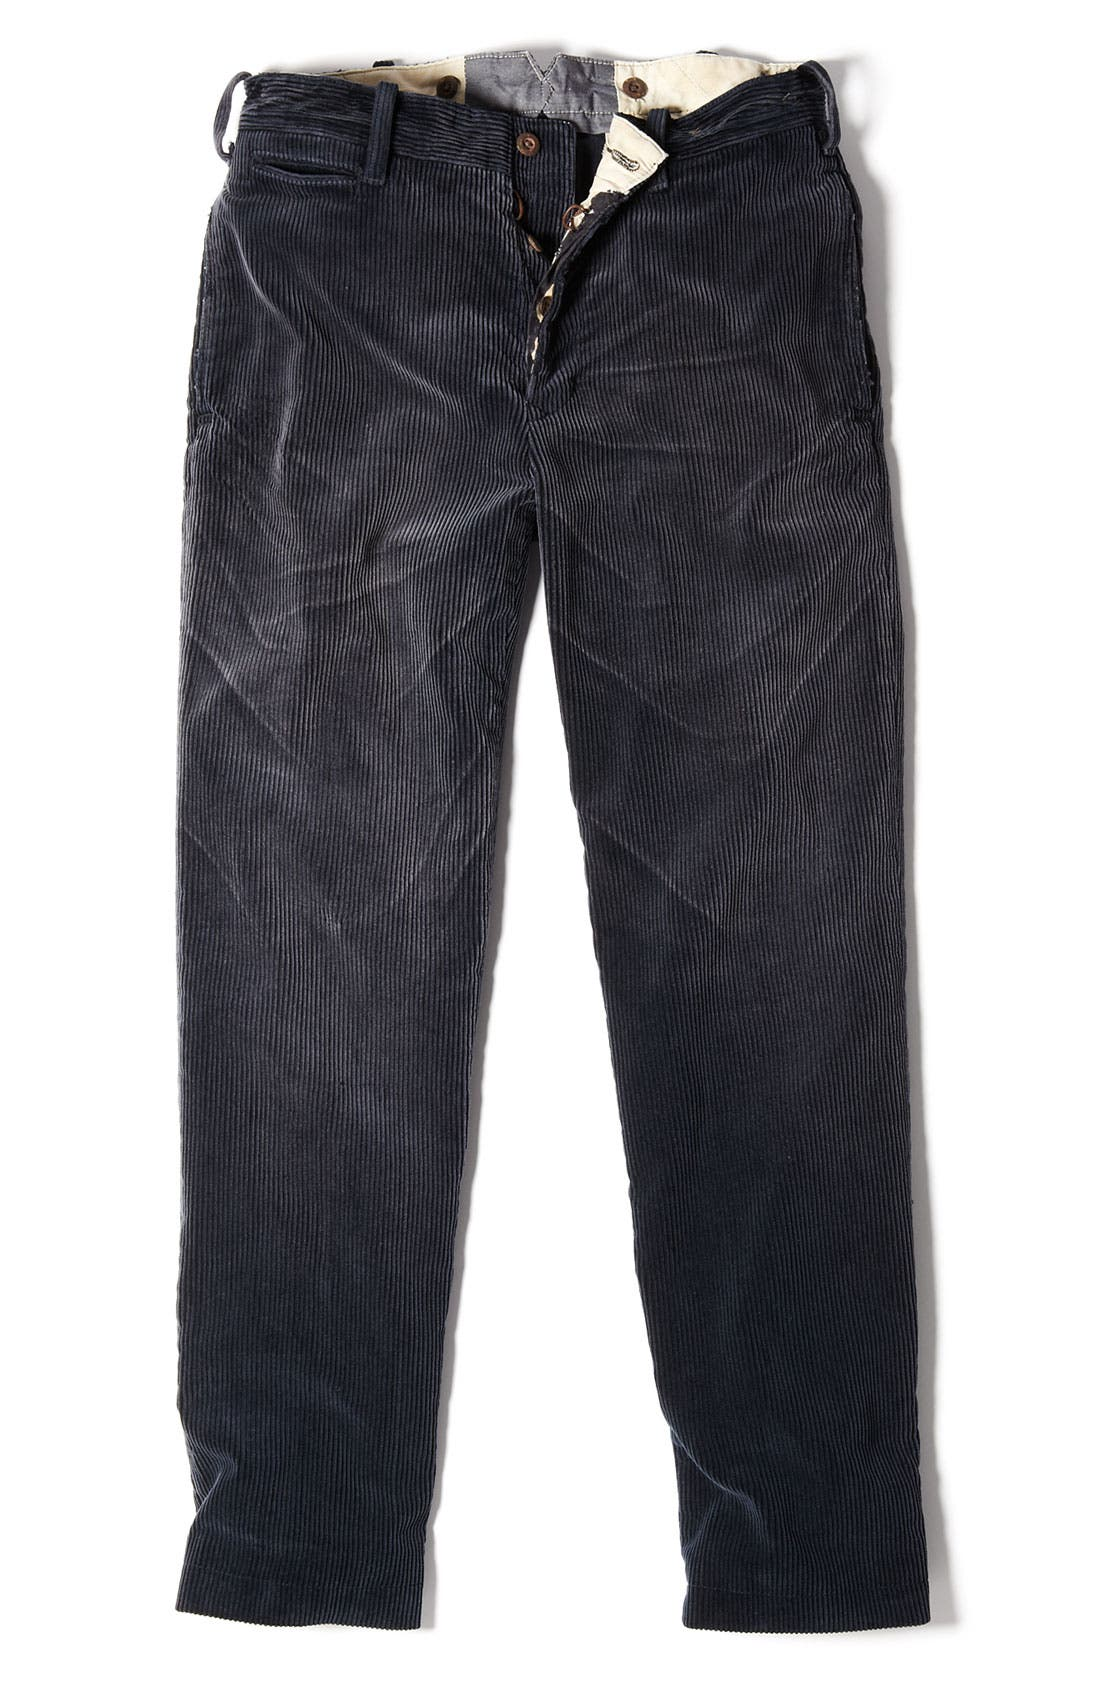 Alternate Image 4  - Polo Ralph Lauren 'Country' Corduroy Pants